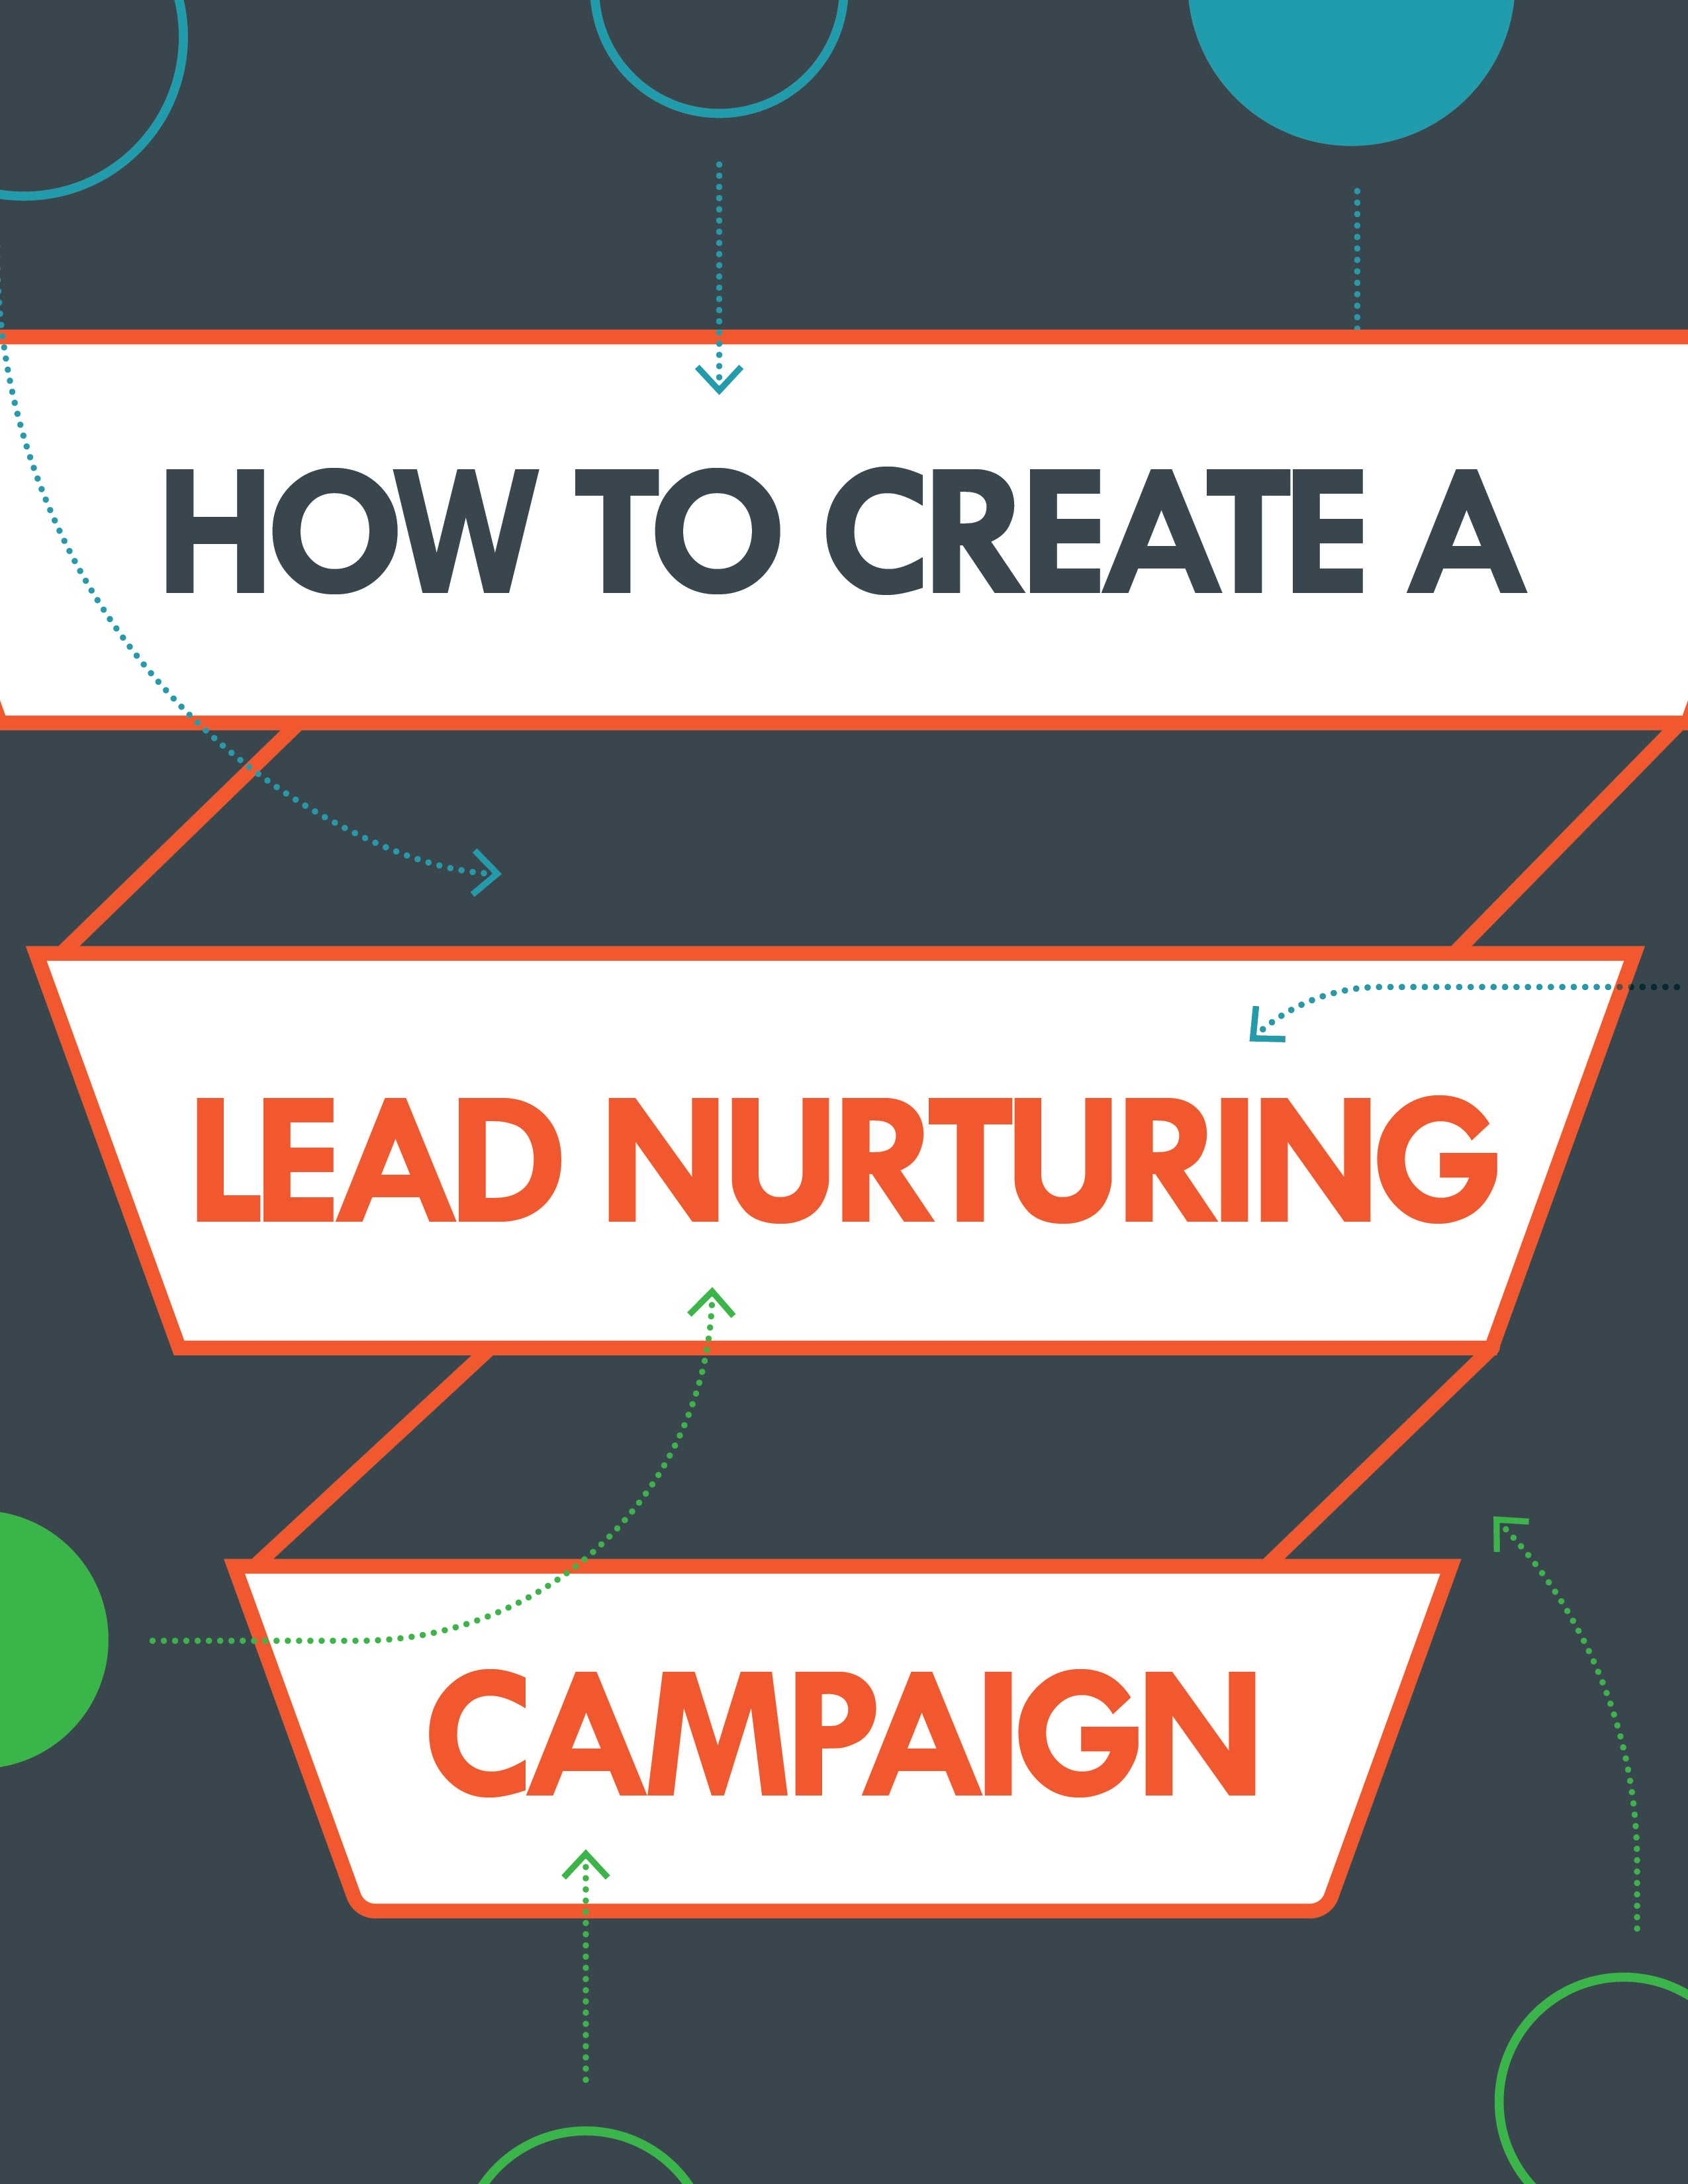 How to Create a Lead Nurturing Campaign